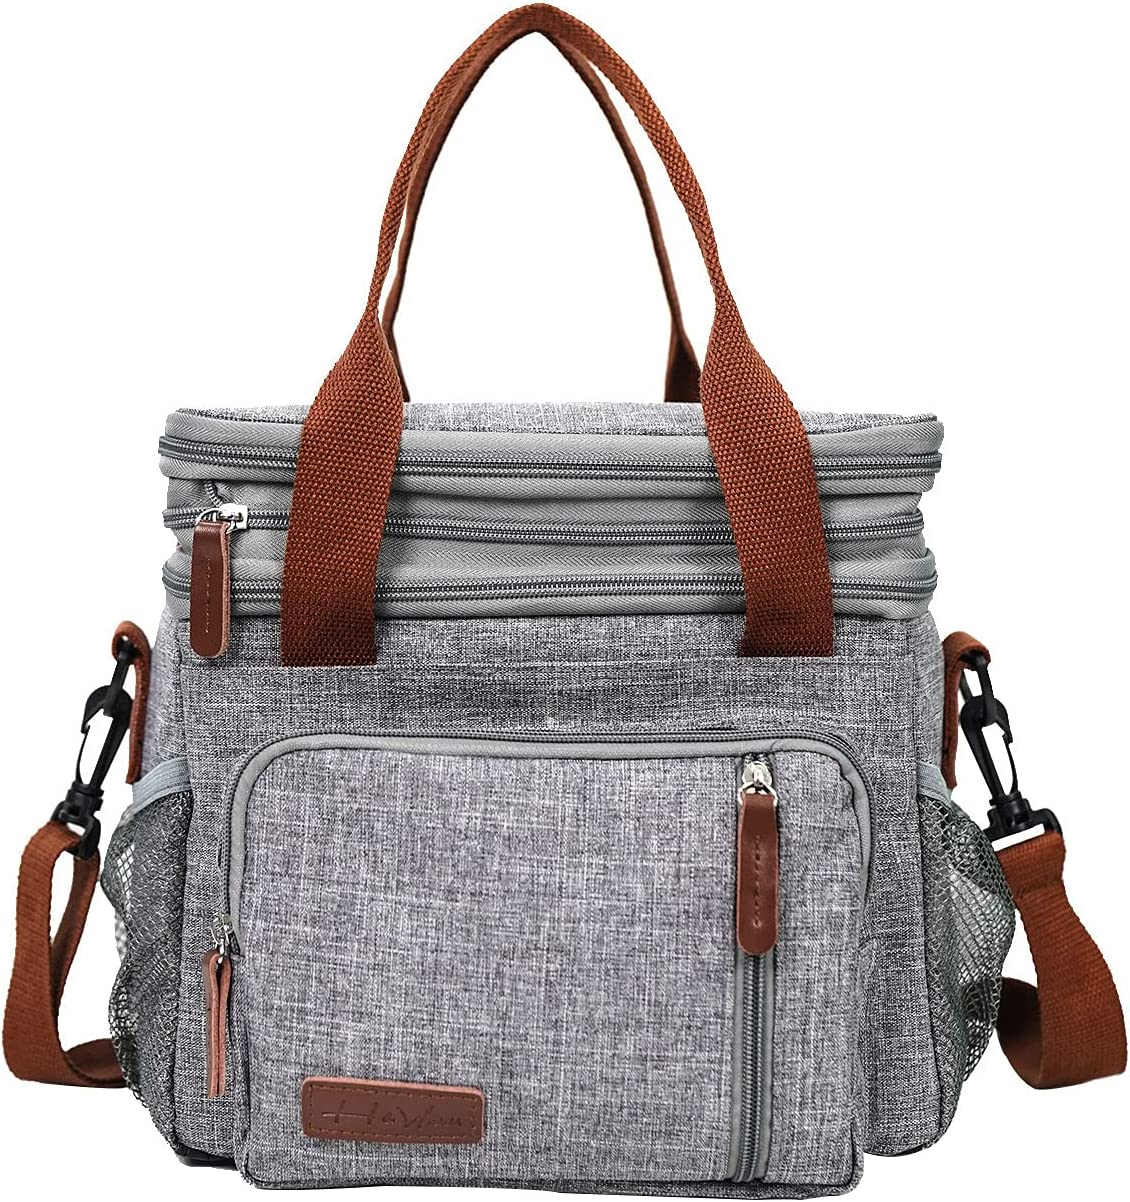 H&Wanss Insulated Lunch Bag for Women Cooler Lunch Box Men Leakproof Tote with Handle Shoulder Strap for Work Picnic (Gray)